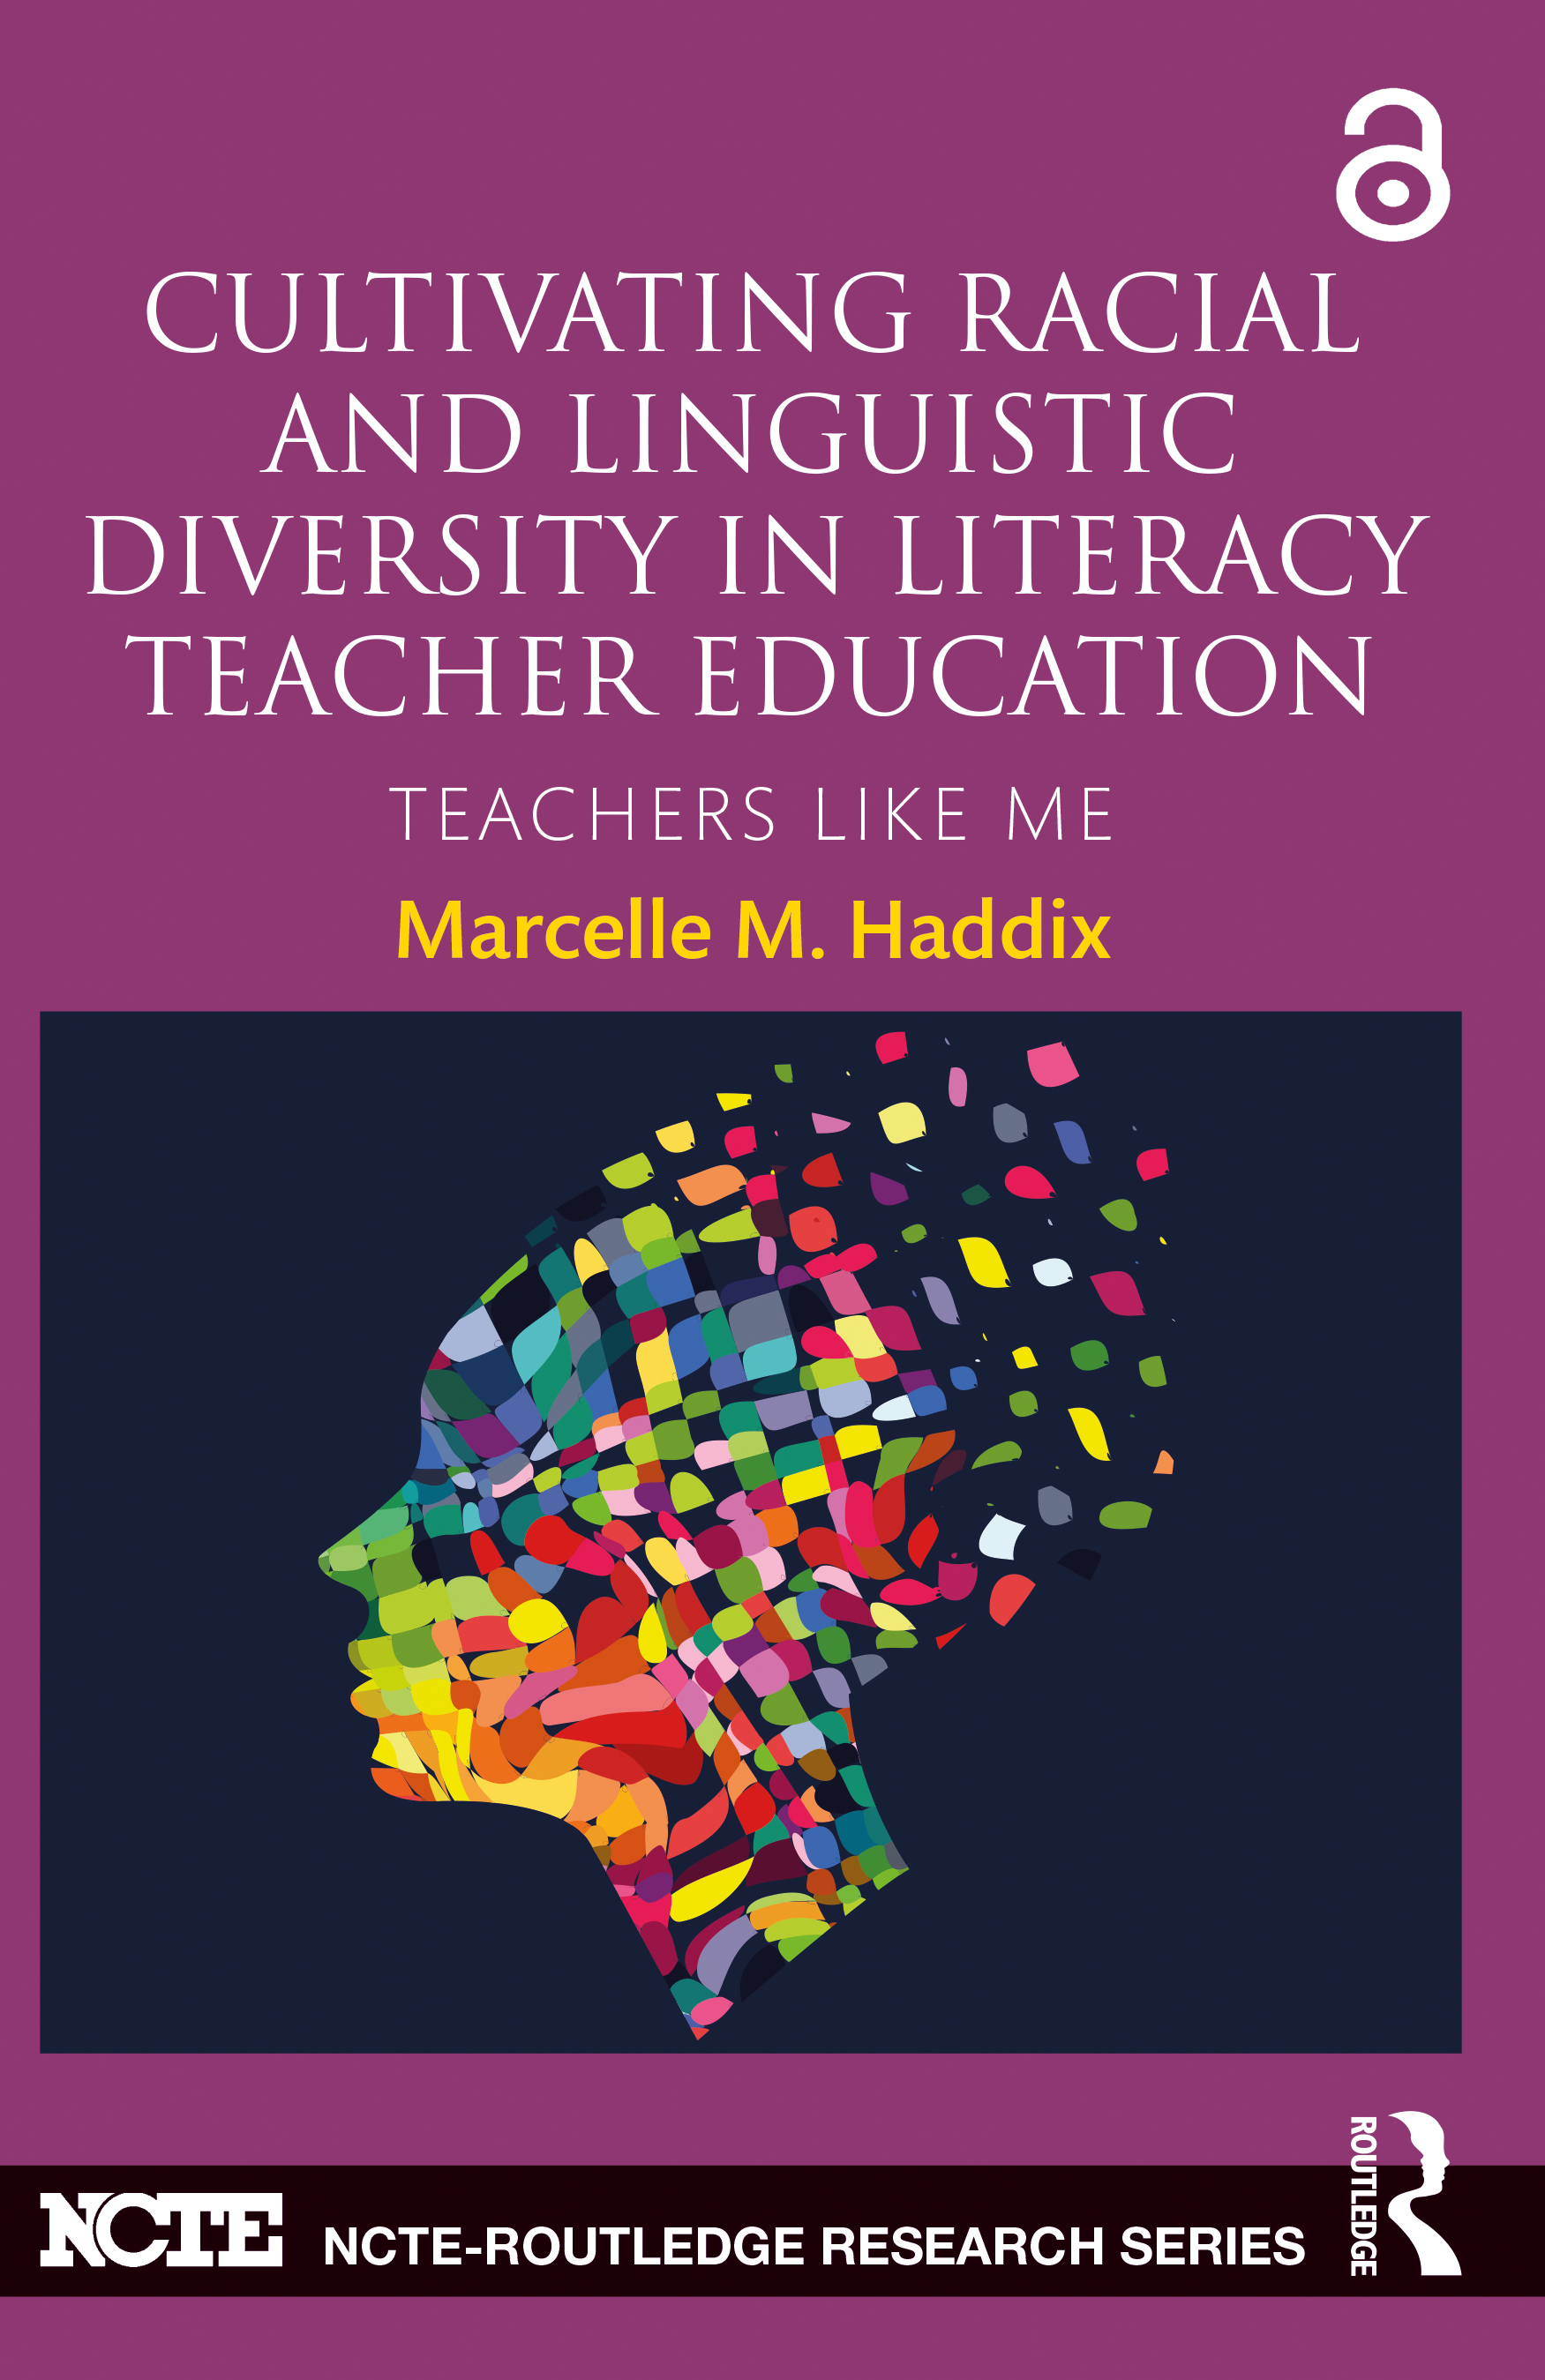 Cultivating Racial and Linguistic Diversity in Literacy Teacher Education: Teachers Like Me book cover